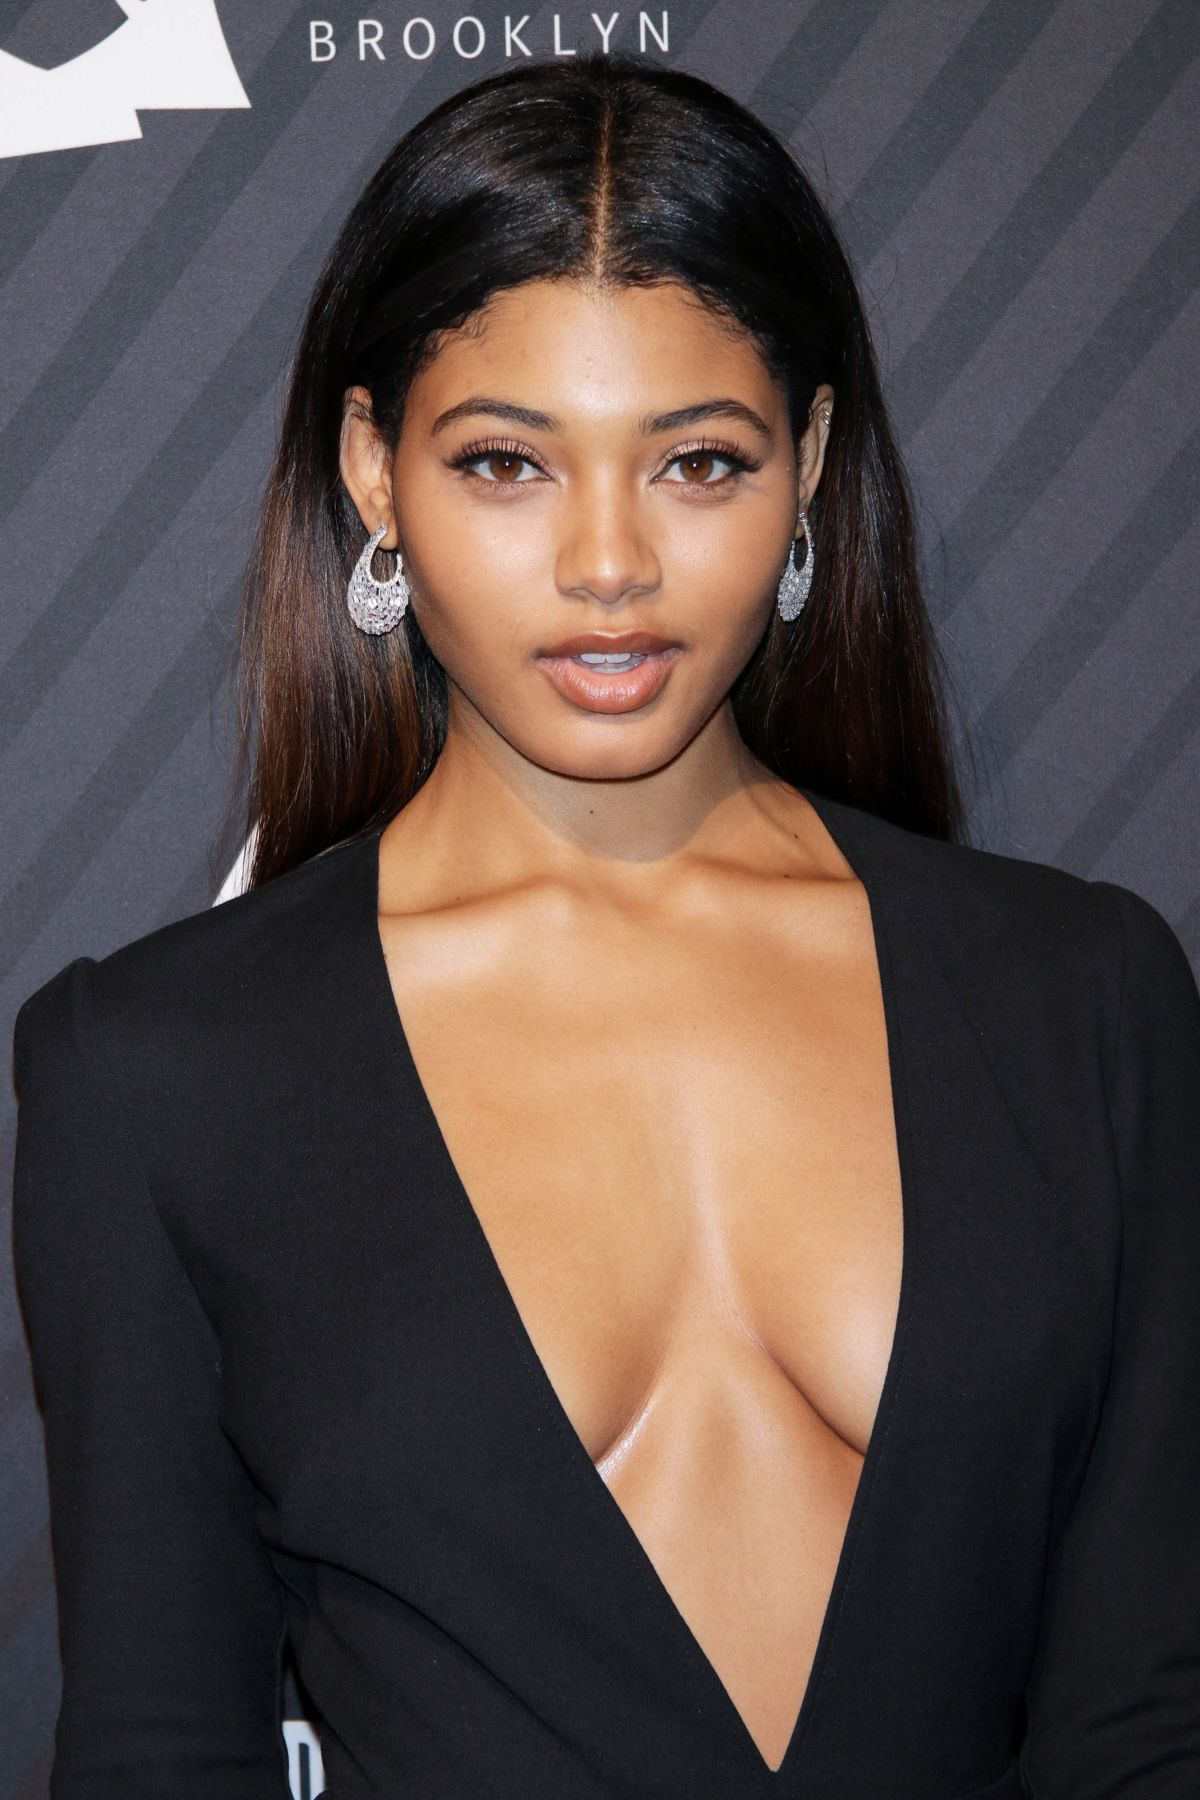 Danielle Herrington Raven Lyn naked (72 pics), photo Paparazzi, Twitter, bra 2016